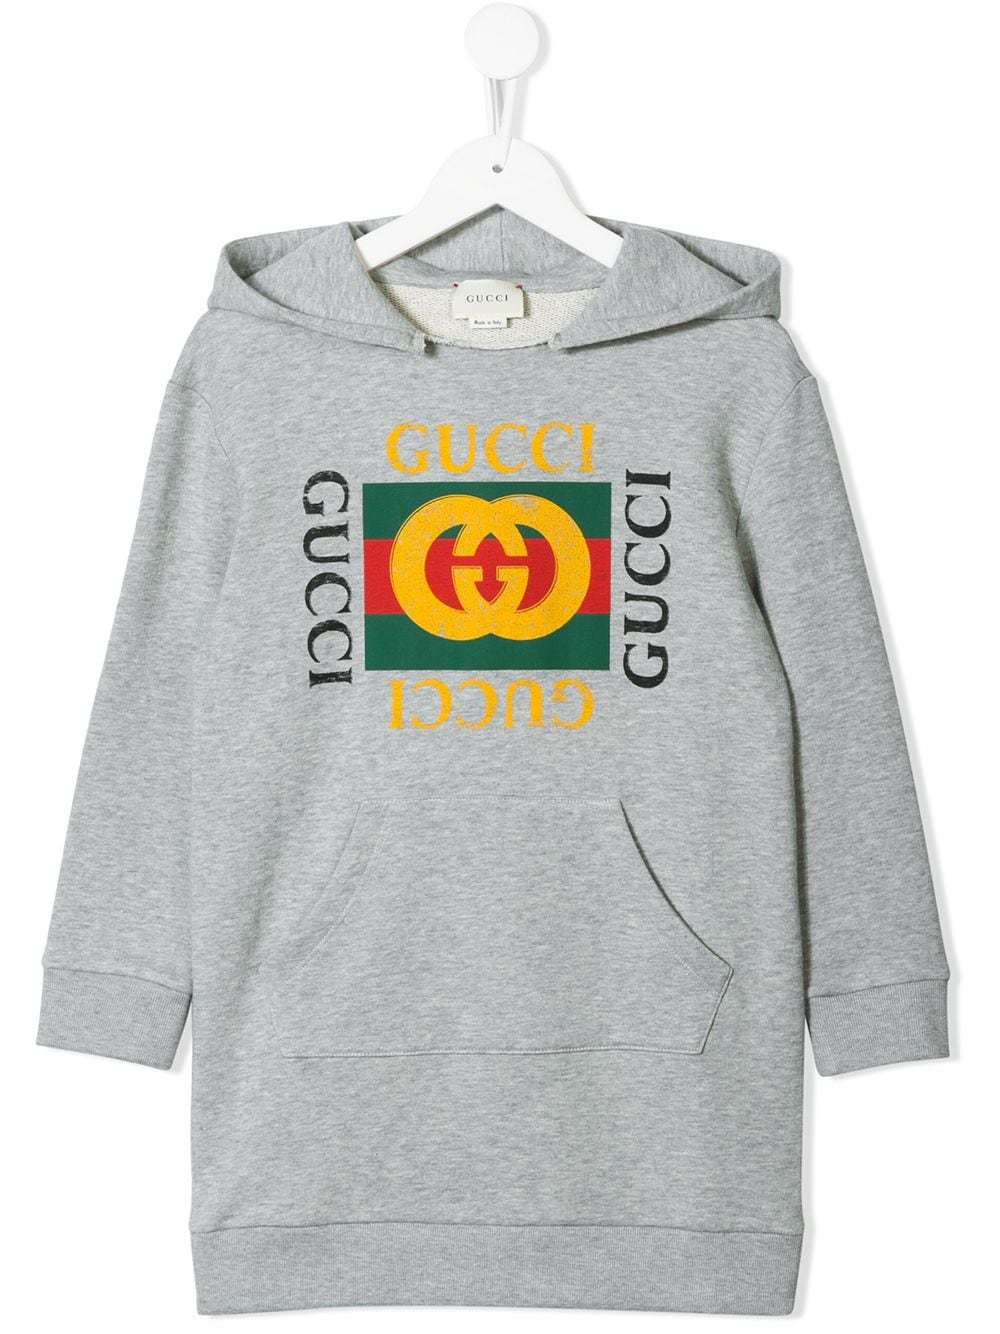 Gucci Kids logo print sweatshirt dress - Grau von Gucci Kids